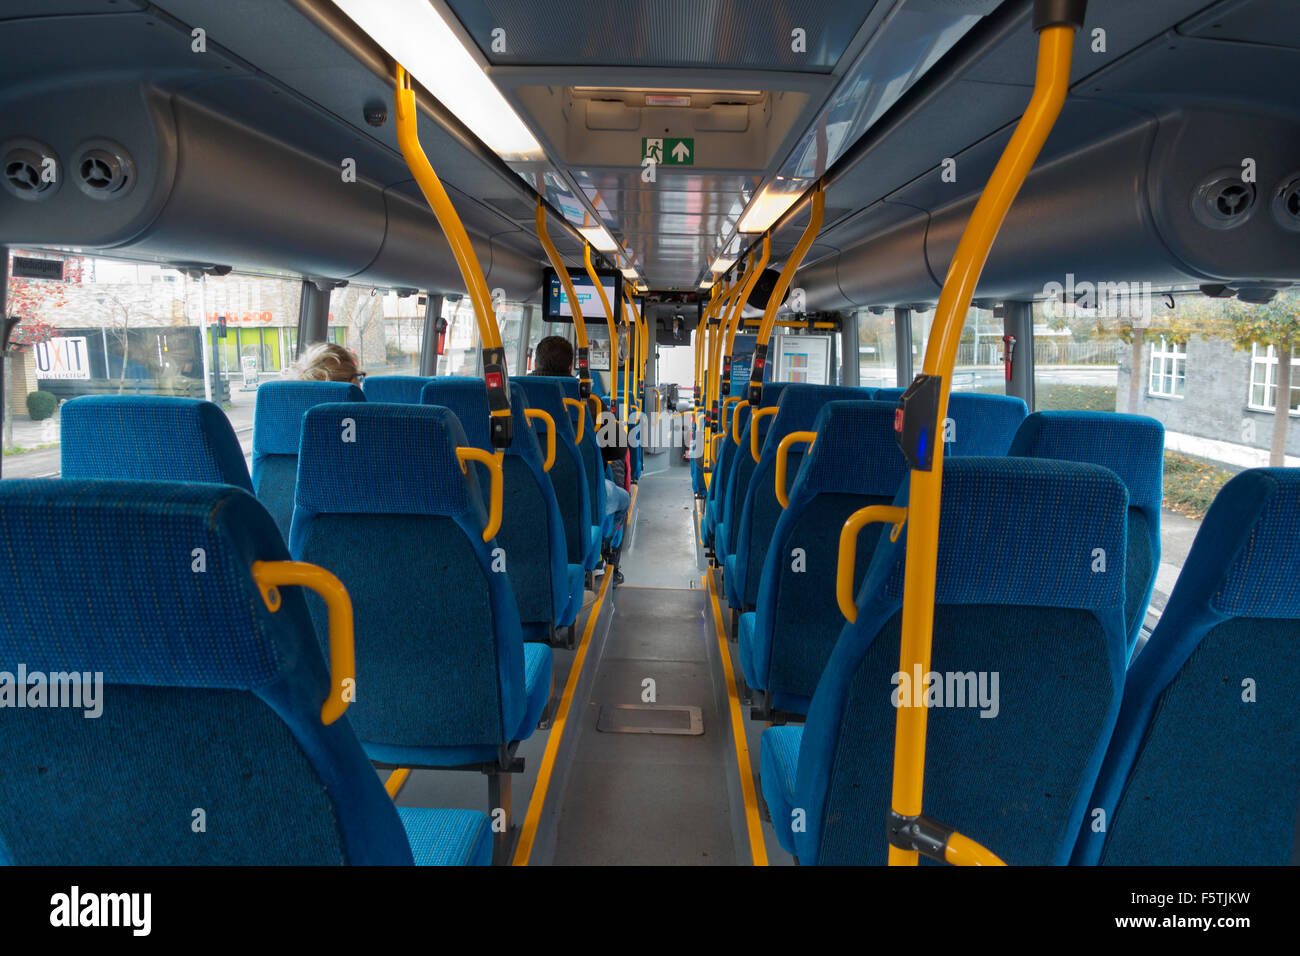 Interior of city bus north of Copenhagen, Denmark. An S-bus, the streets S-trains in Greater Copenhagen. Faster - Stock Image